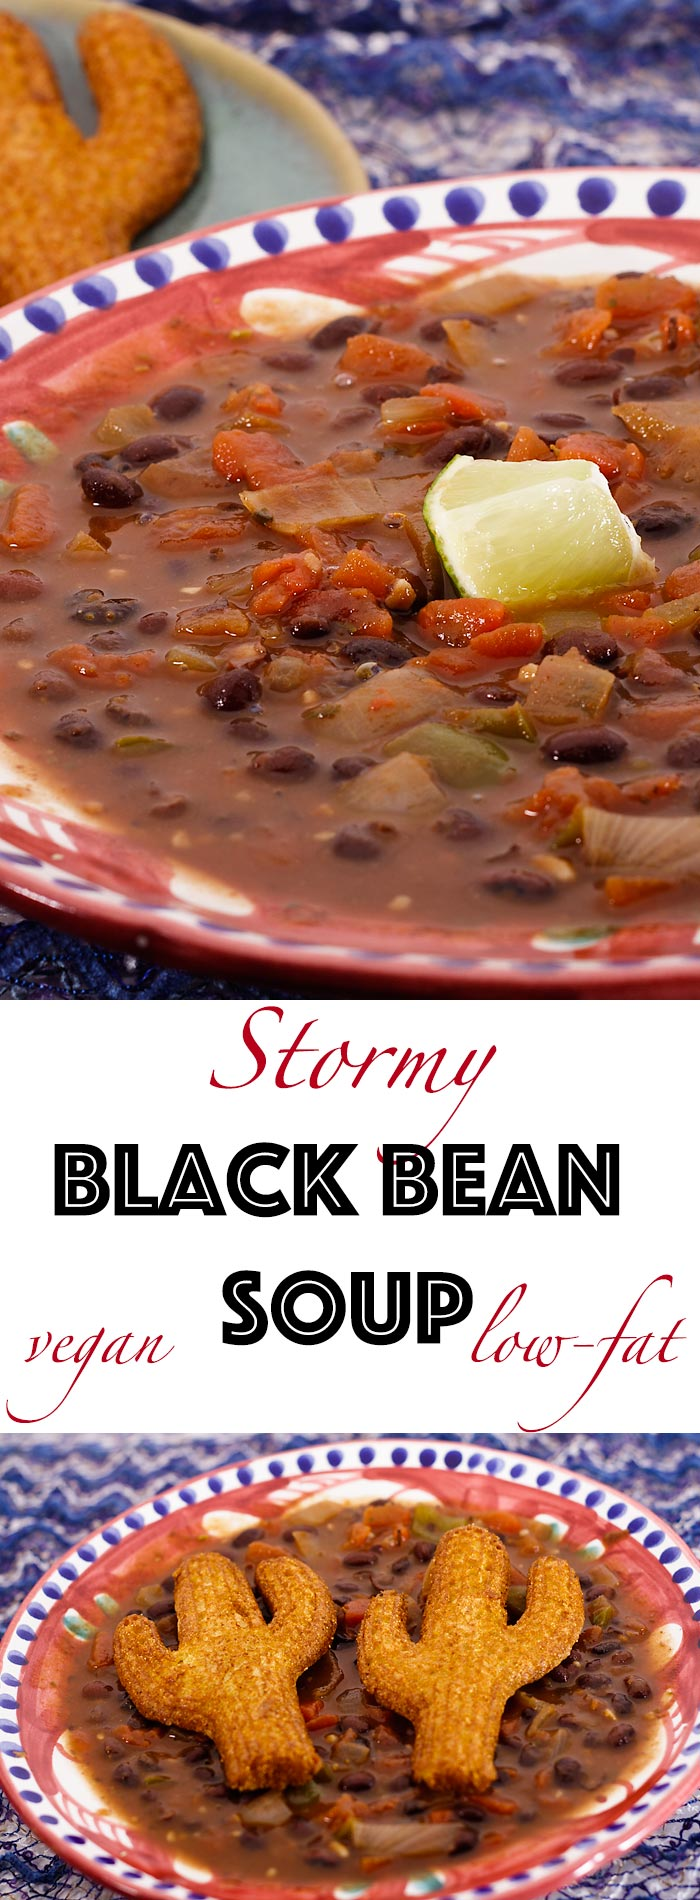 Simple and slightly spicy, this vegan black bean soup can be on the table in about an hour.